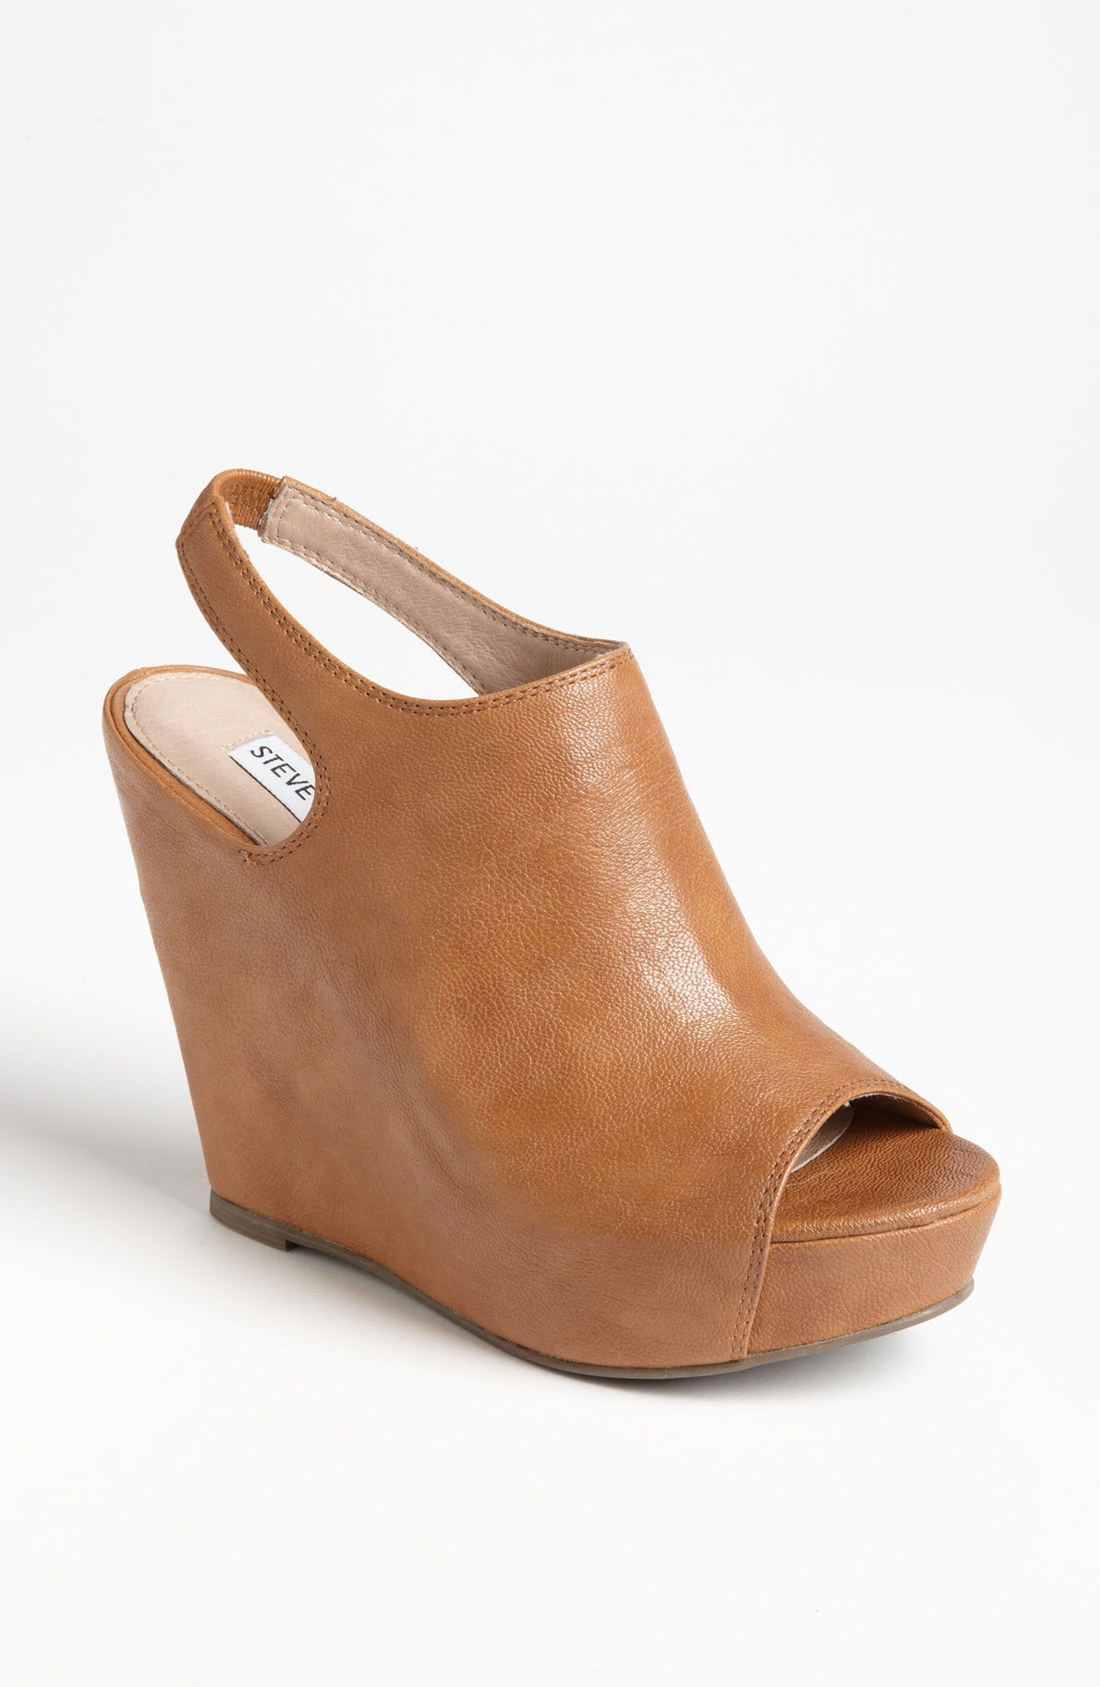 Steve Madden Barcley Wedge In Brown Cognac Lyst